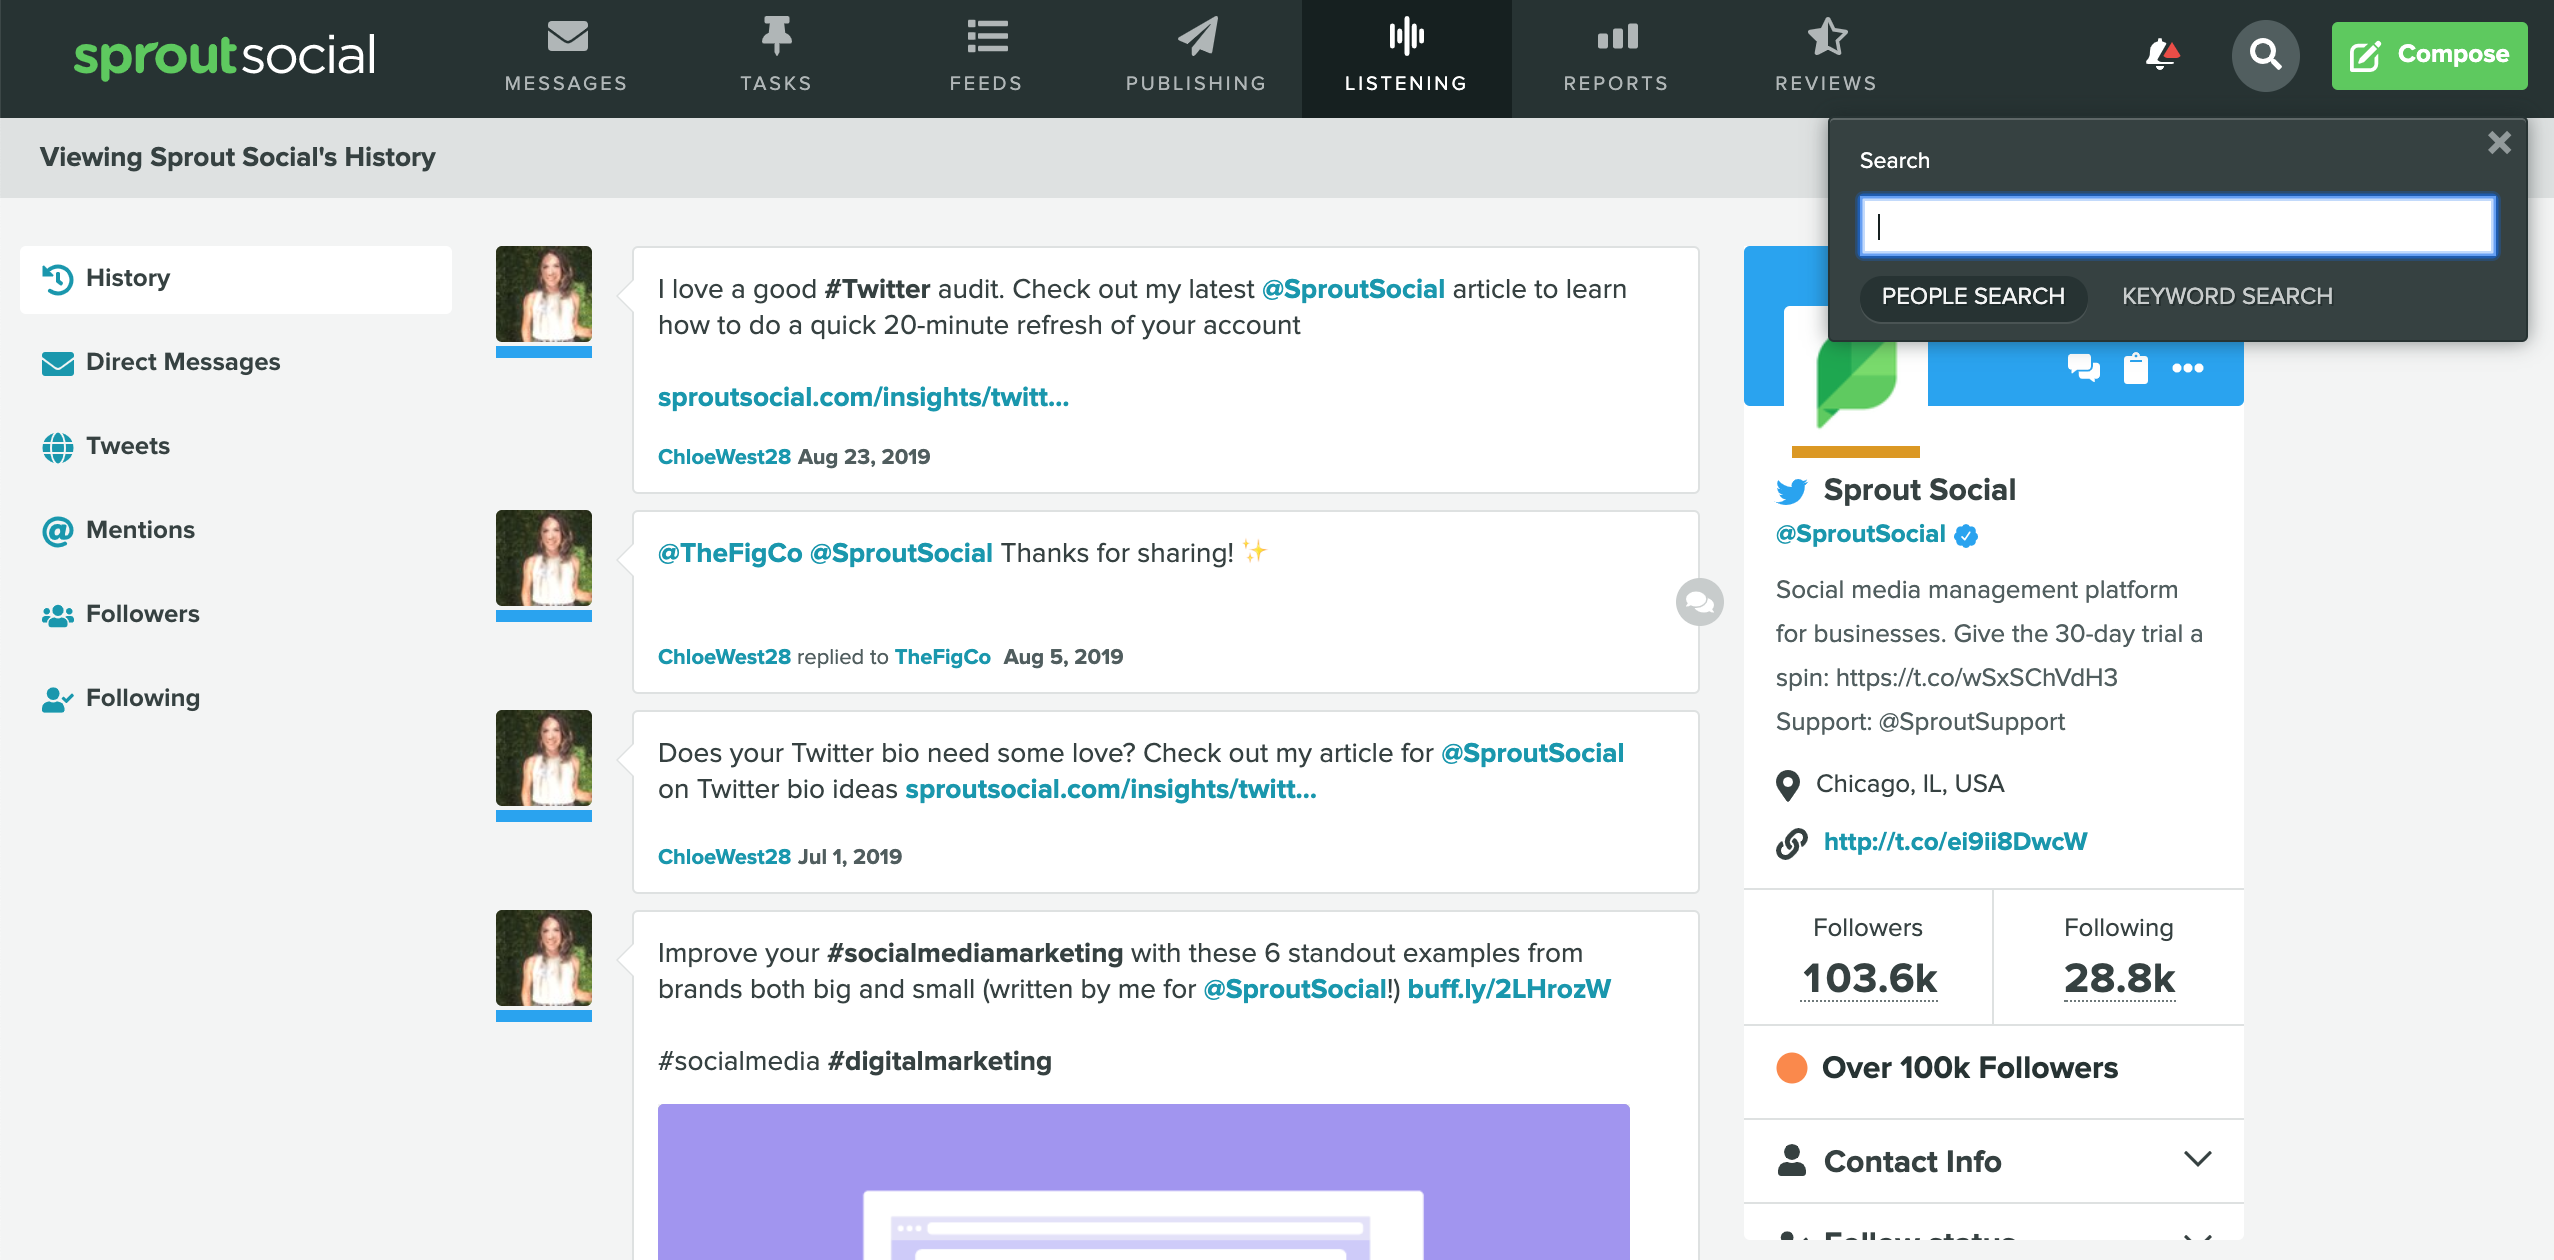 how to search your twitter history - sprout social people search